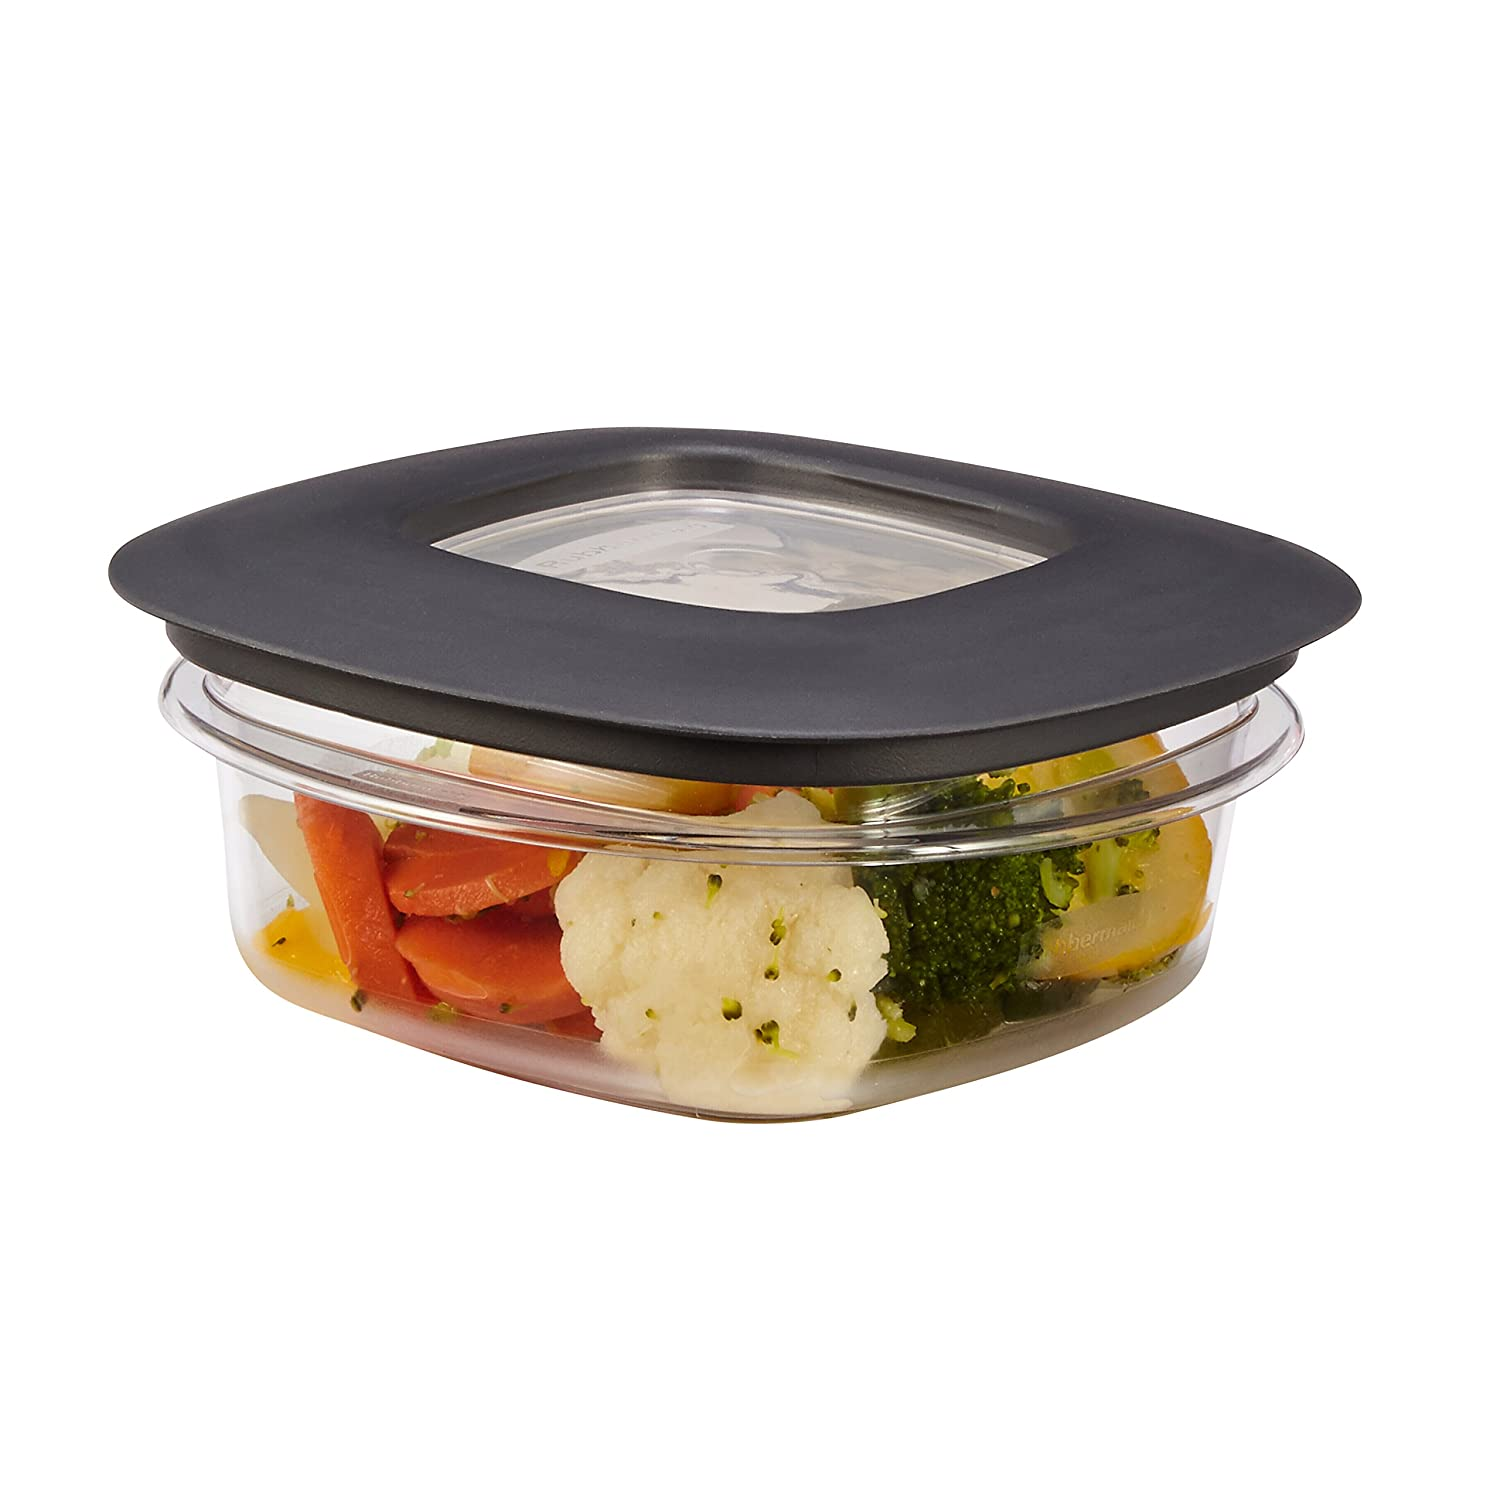 Rubbermaid Rubbermaid Premier Food Storage Container, 1.25 Cup, Grey, , Grey 1937646